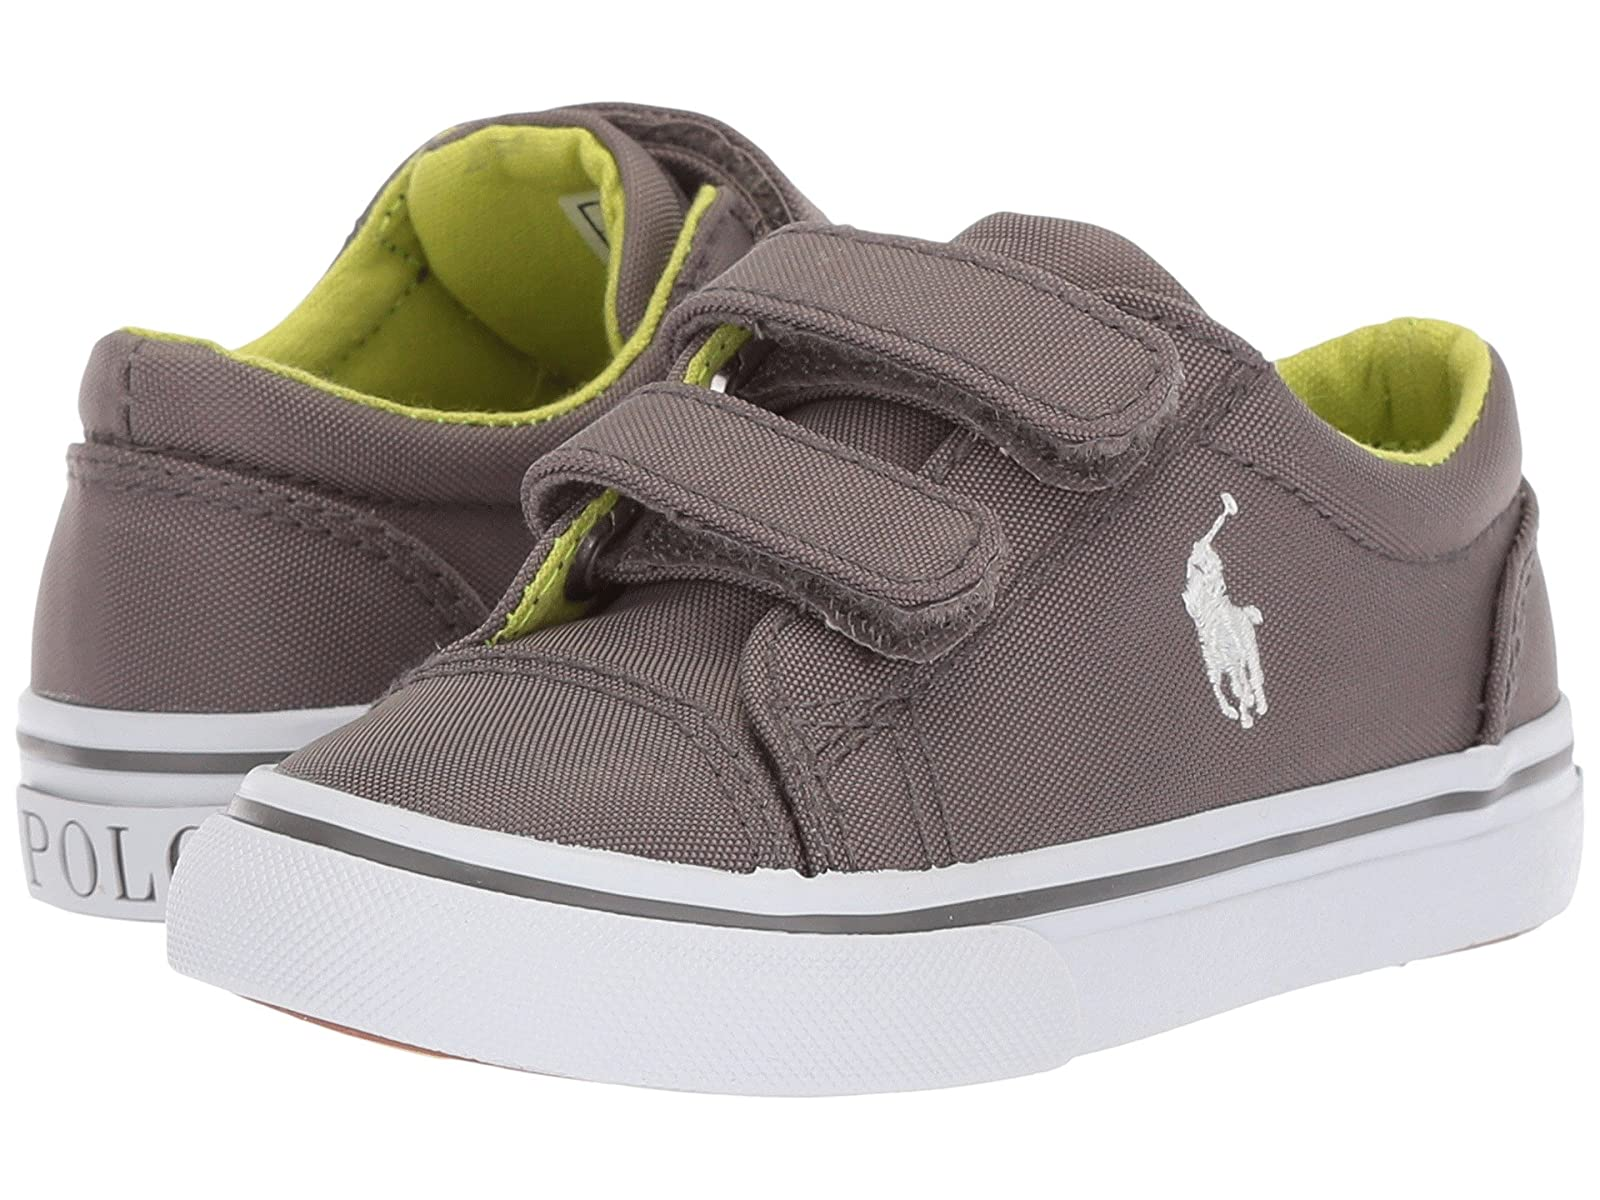 Polo Ralph Lauren Kids Brayden EZ (Toddler)Atmospheric grades have affordable shoes